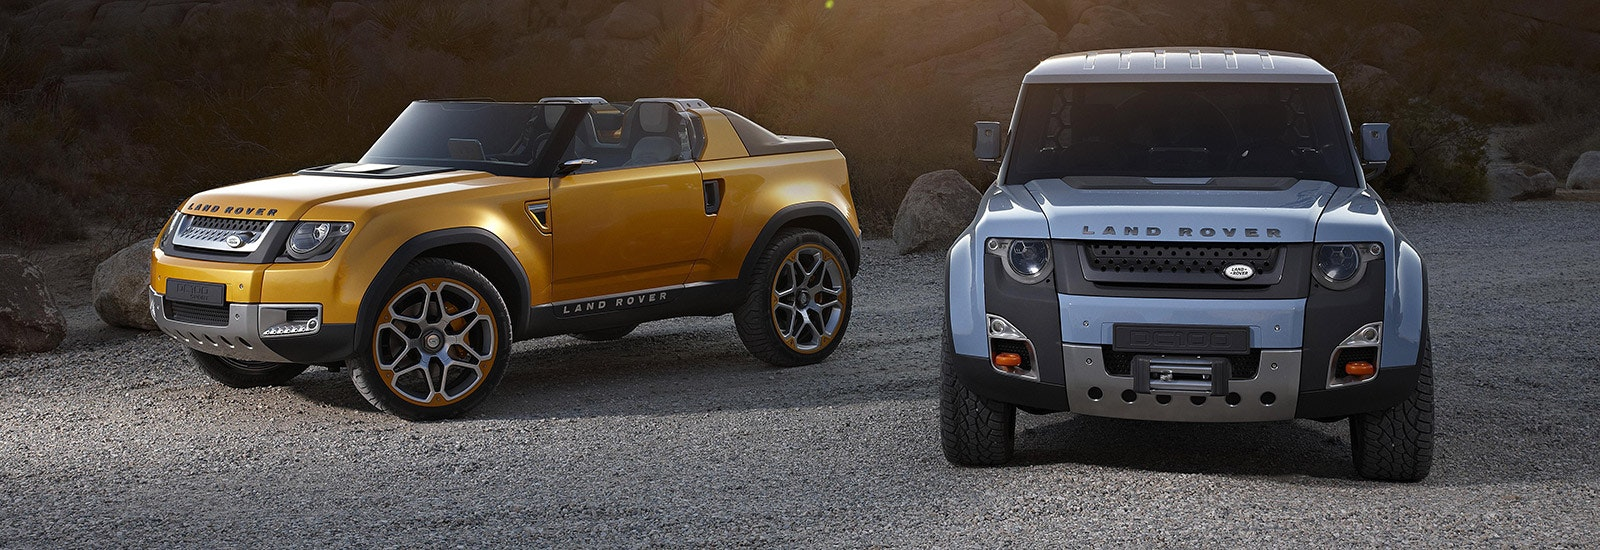 New Land Rover Defender Price Specs And Release Date Carwow